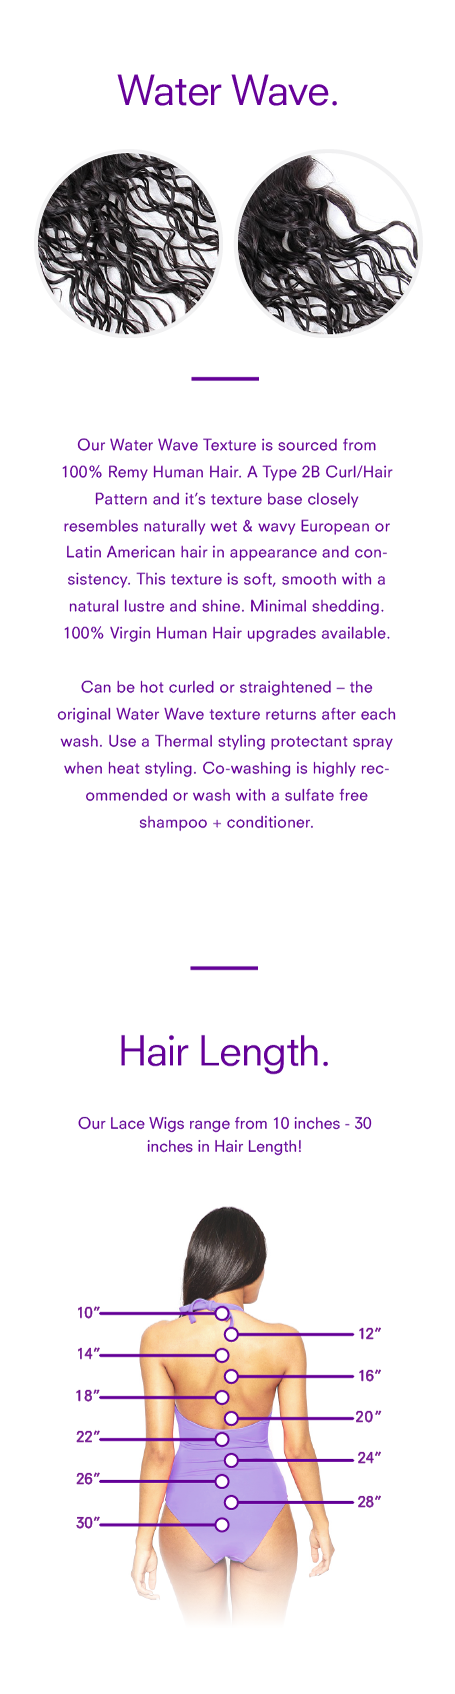 <p>Our <strong>Water Wave Texture Lace Wig</strong> is sourced from 100% Remy Human Hair. A <em>Type 2B Curl/Hair Pattern</em> and it's texture base closely resembles naturally wet & wavy European or Latin American hair in appearance and consistency. This texture is soft, smooth with a natural lustre and shine. Minimal shedding. <em>100% Virgin Human Hair upgrades available.</em></p> <p>Can be hot curled or straightened – the original Water Wave texture returns after each wash. Use a Thermal styling protectant spray when heat styling. Co-washing is highly recommended or wash with a sulfate free shampoo + conditioner.</p>